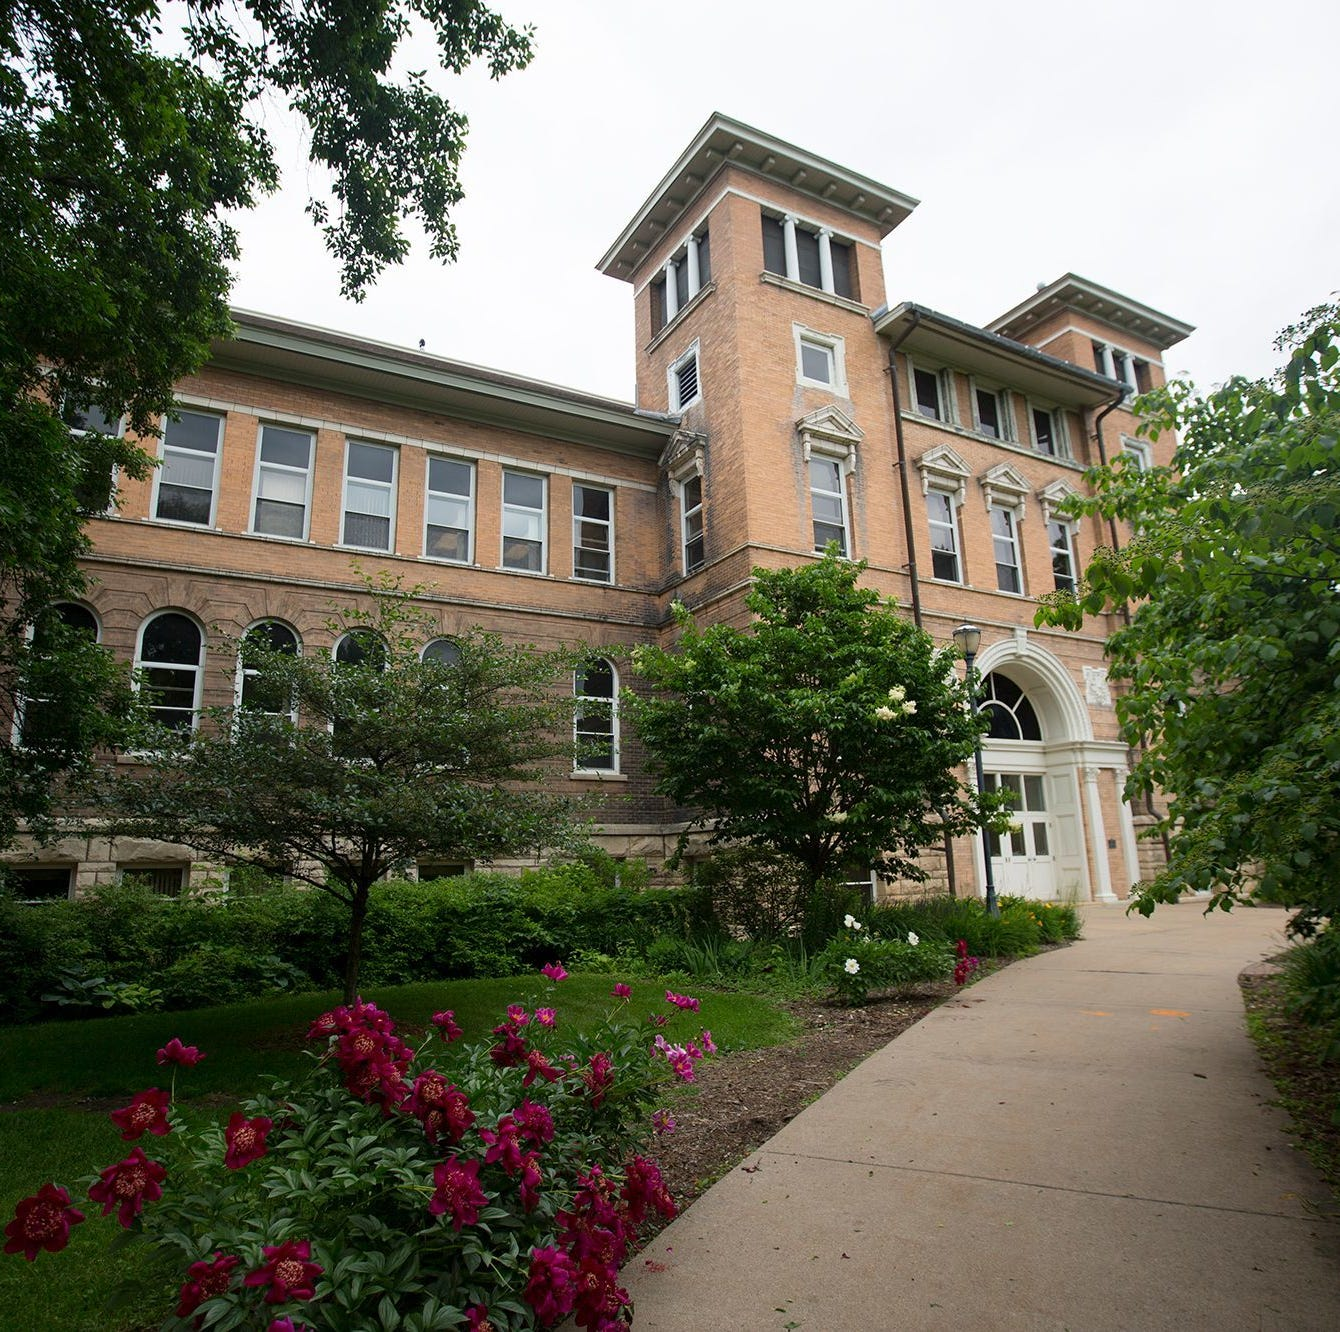 How did UW-Stevens Point save liberal arts majors? By cutting more than 130 staff, faculty positions